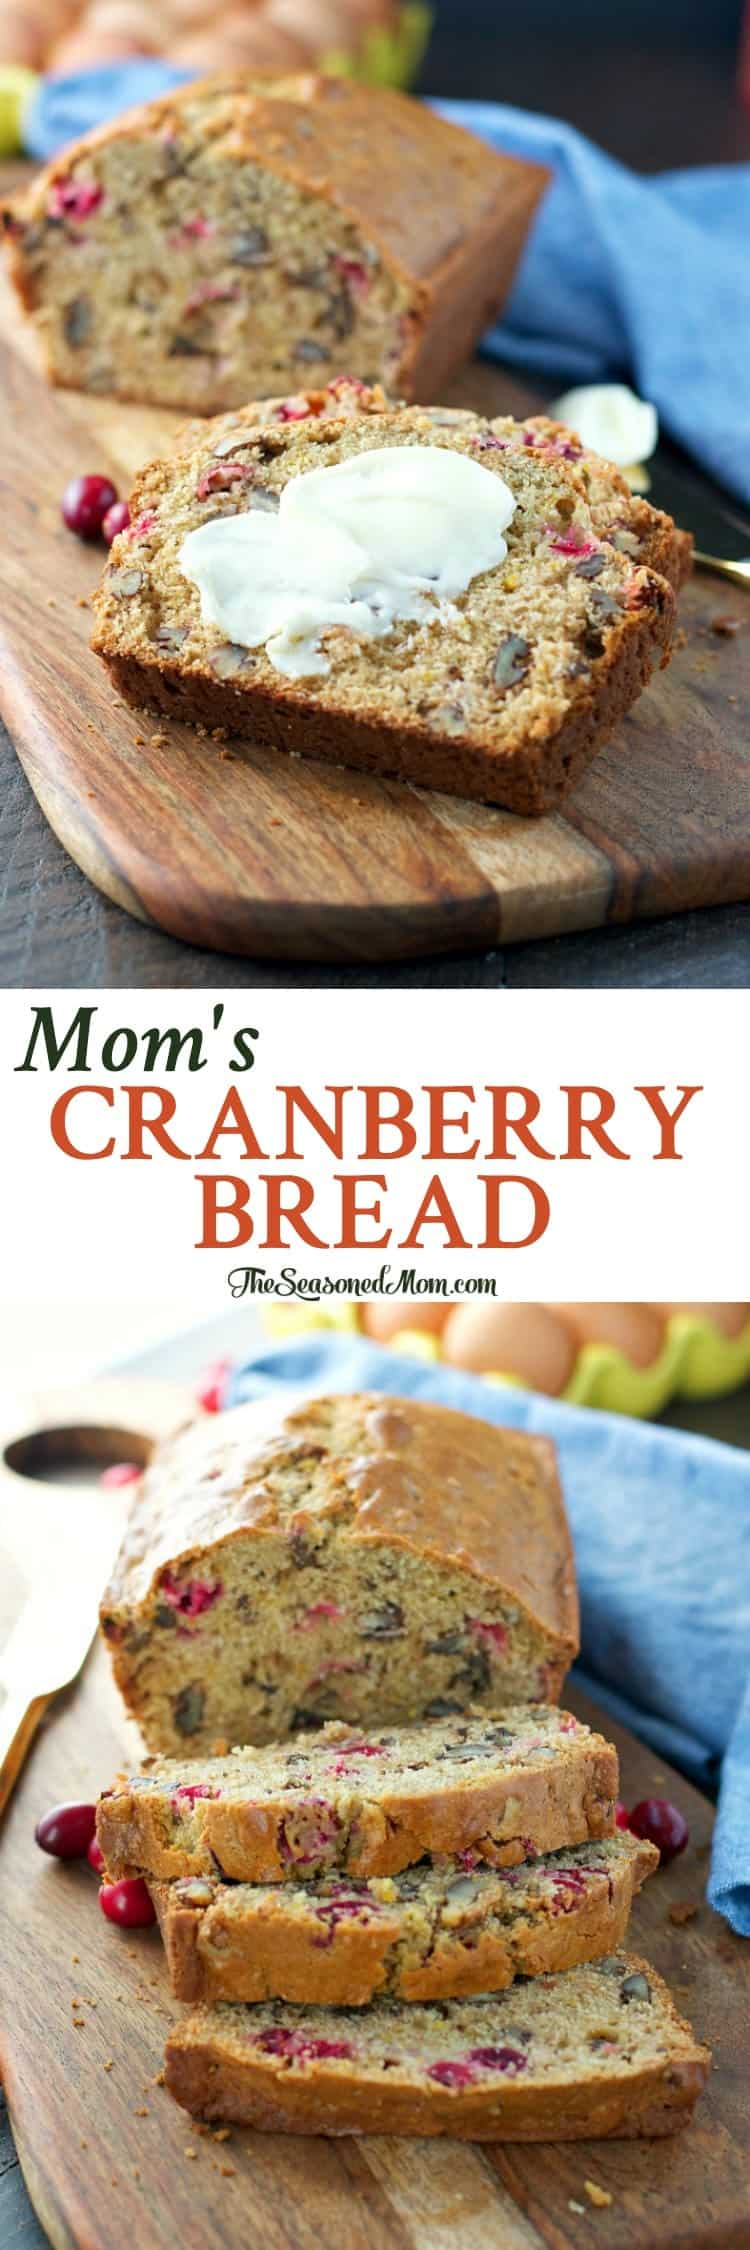 You only need about 15 minutes to prepare Mom's Cranberry Bread -- a delicious holiday breakfast or brunch option, or an easy Christmas food gift!